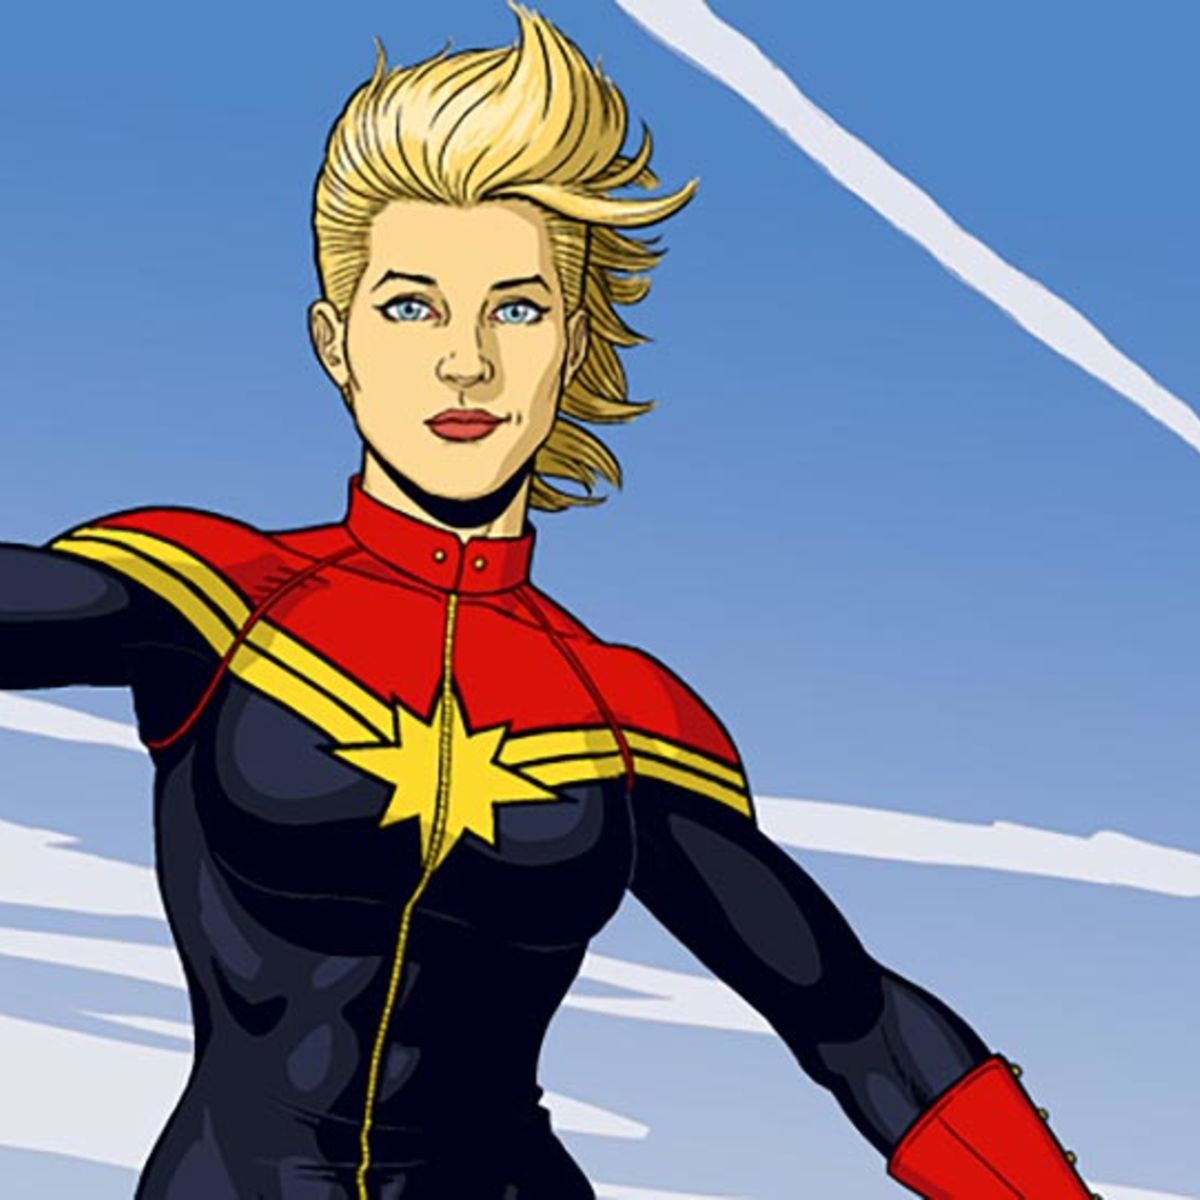 captain_marvel_01.jpg